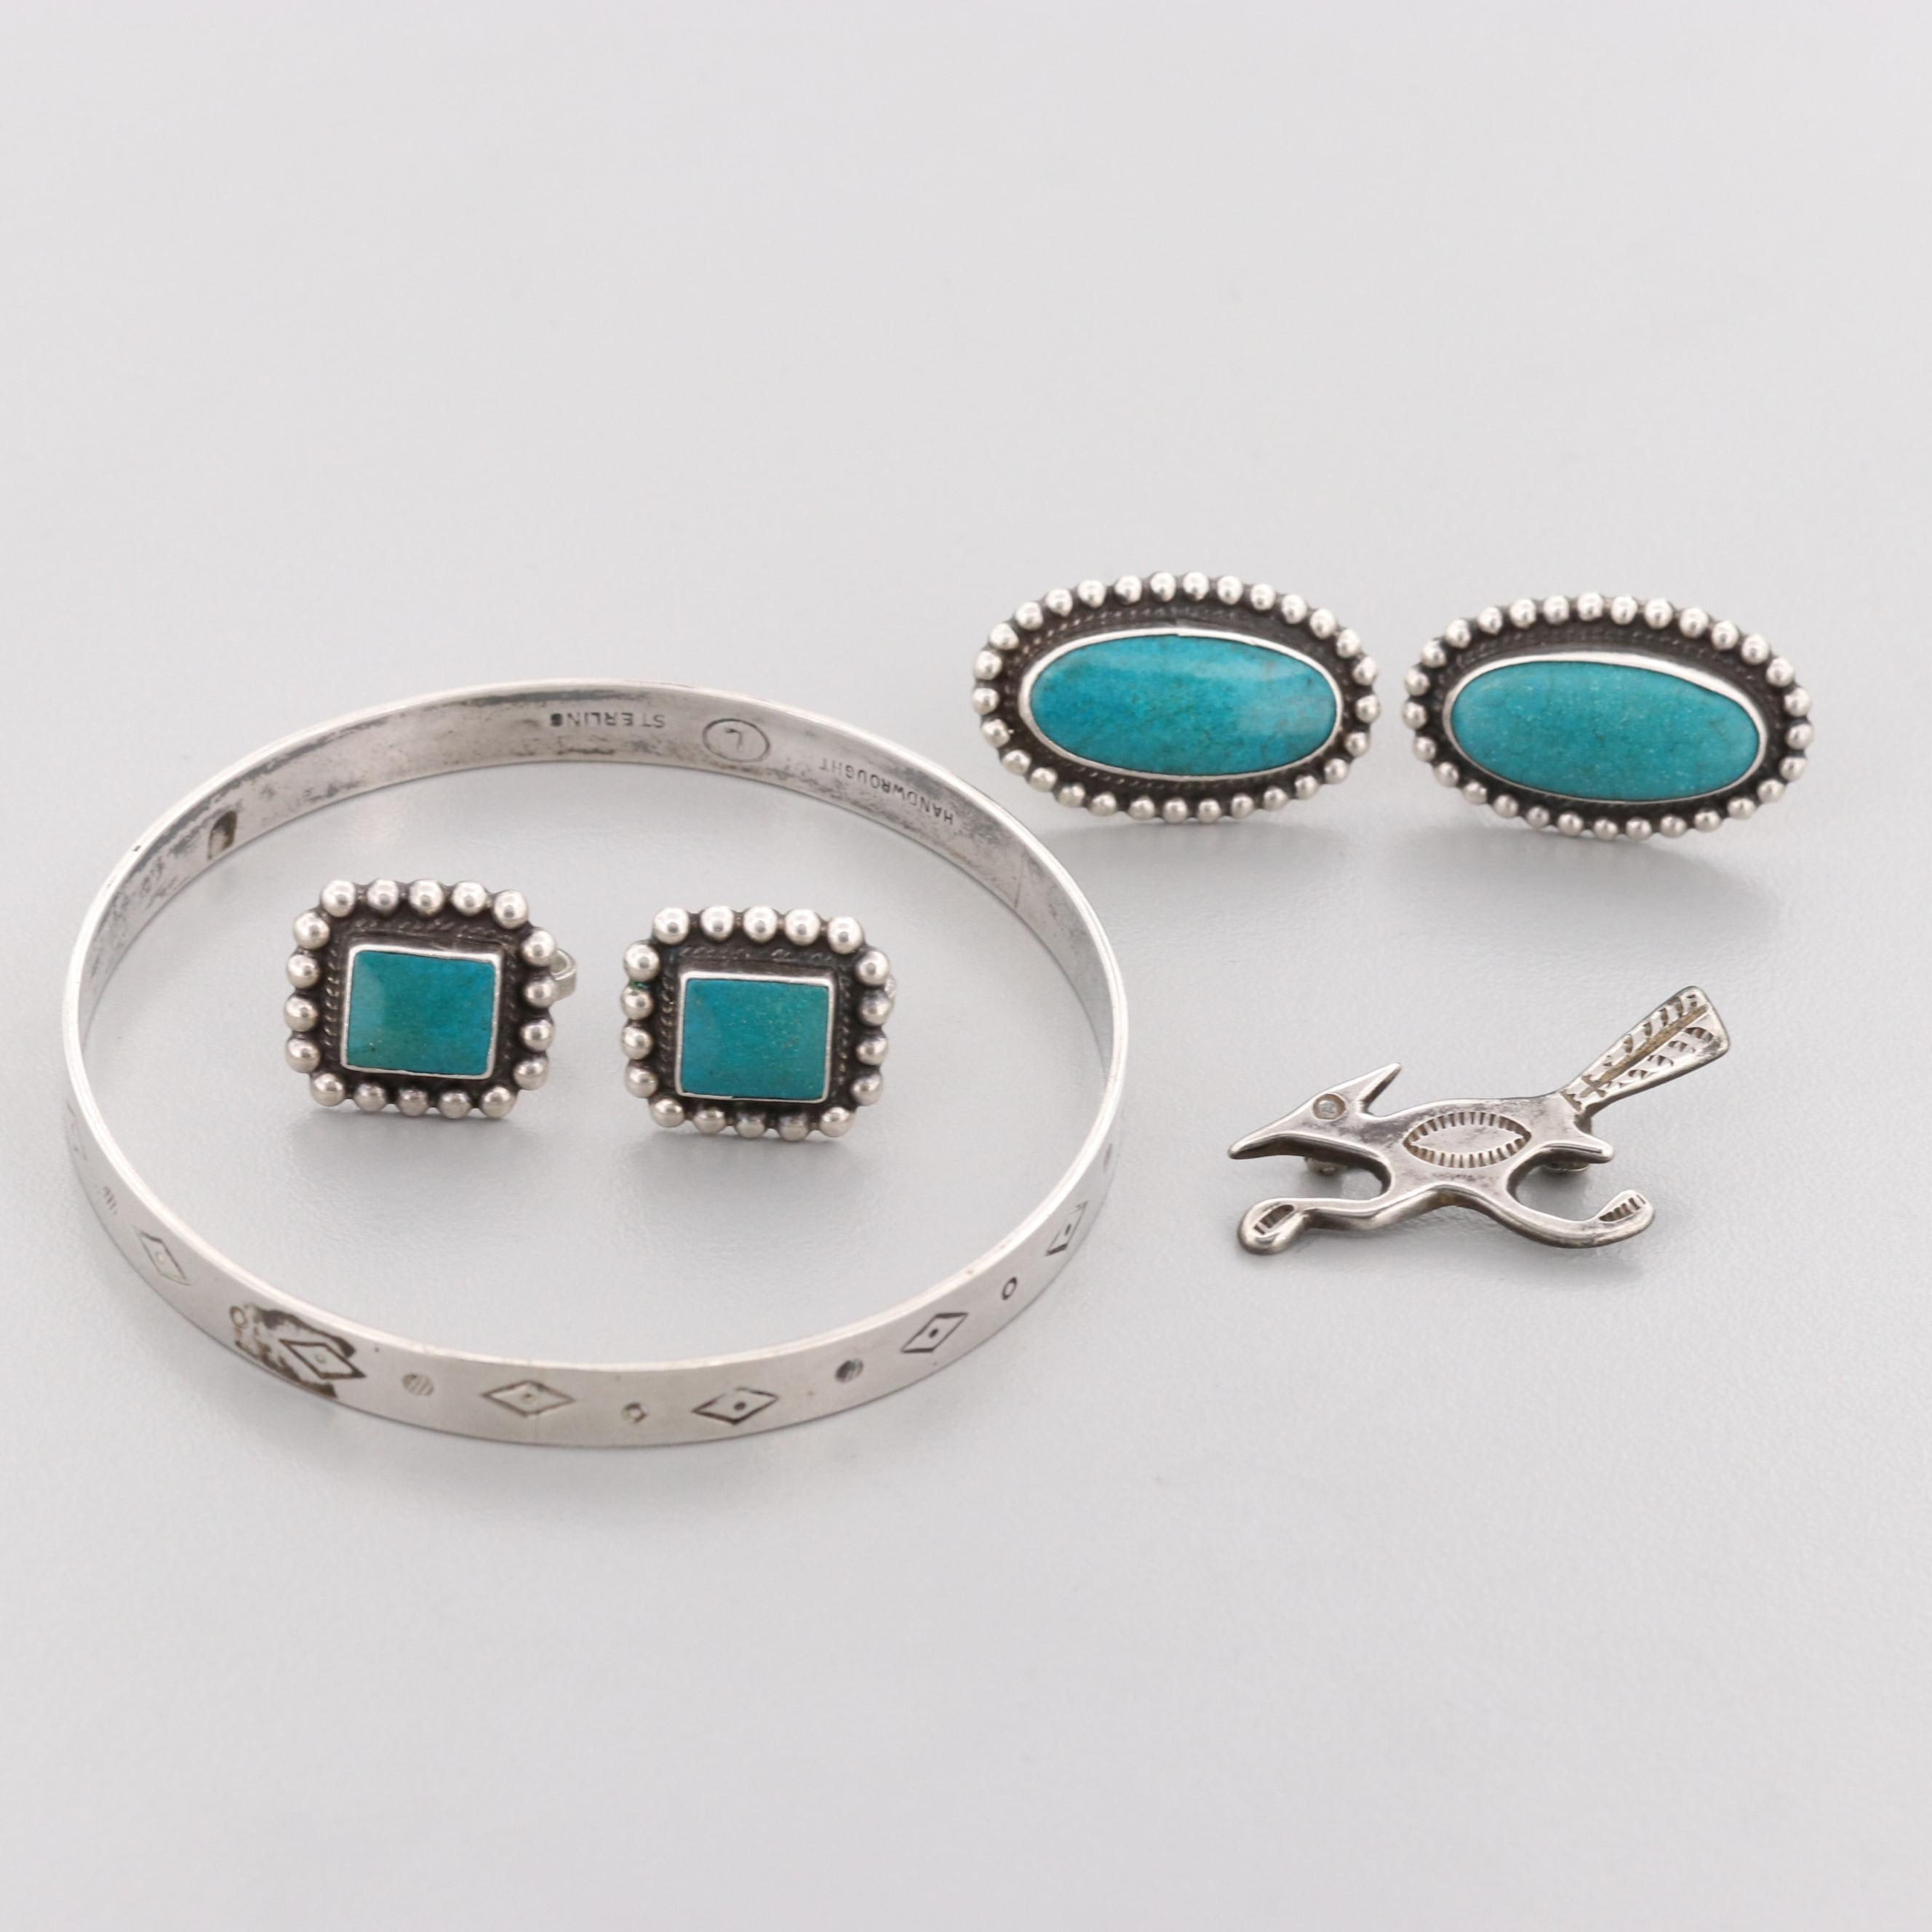 Southwestern Sterling Silver Jewelry Including Reconstituted Turquoise